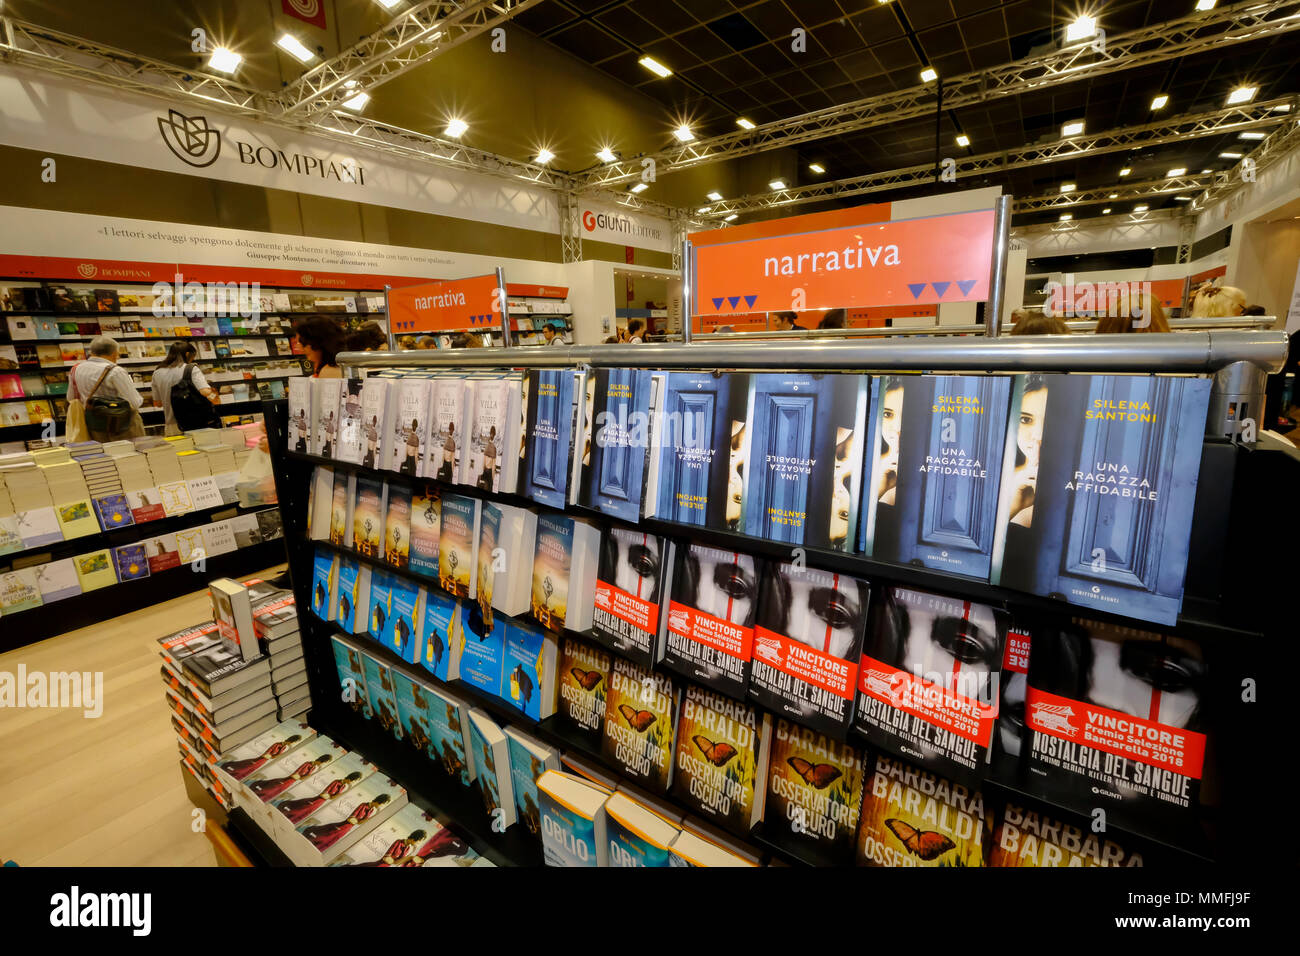 Turin, Piedmont, Italy, 10th May, 2018. International Book fair 2018,first day.Bompiani publisher's stand Credit: RENATO VALTERZA/Alamy Live News - Stock Image